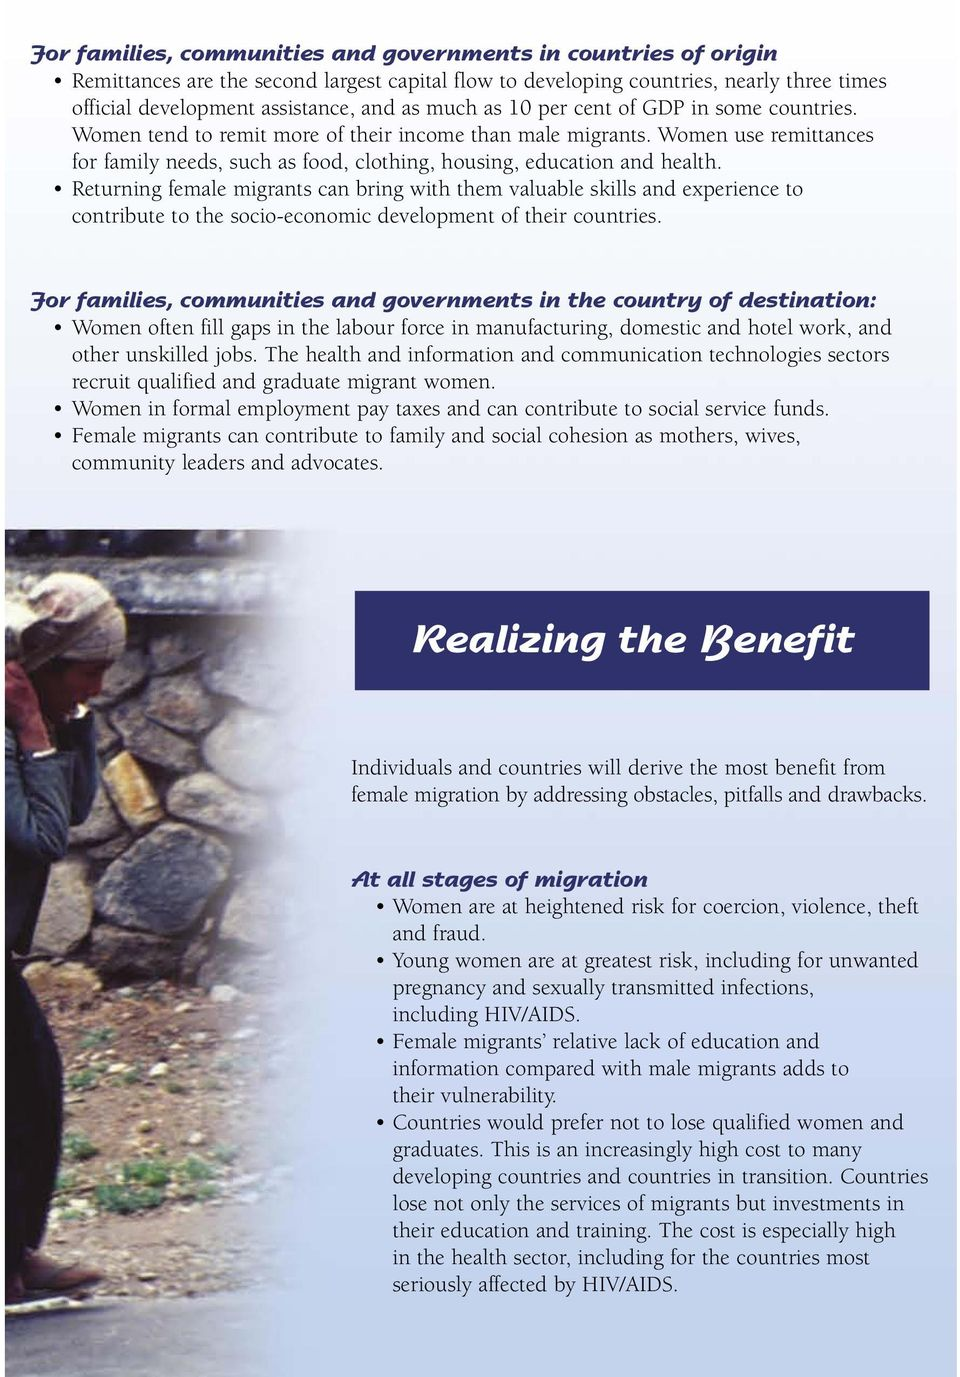 Women use remittances for family needs, such as food, clothing, housing, education and health.